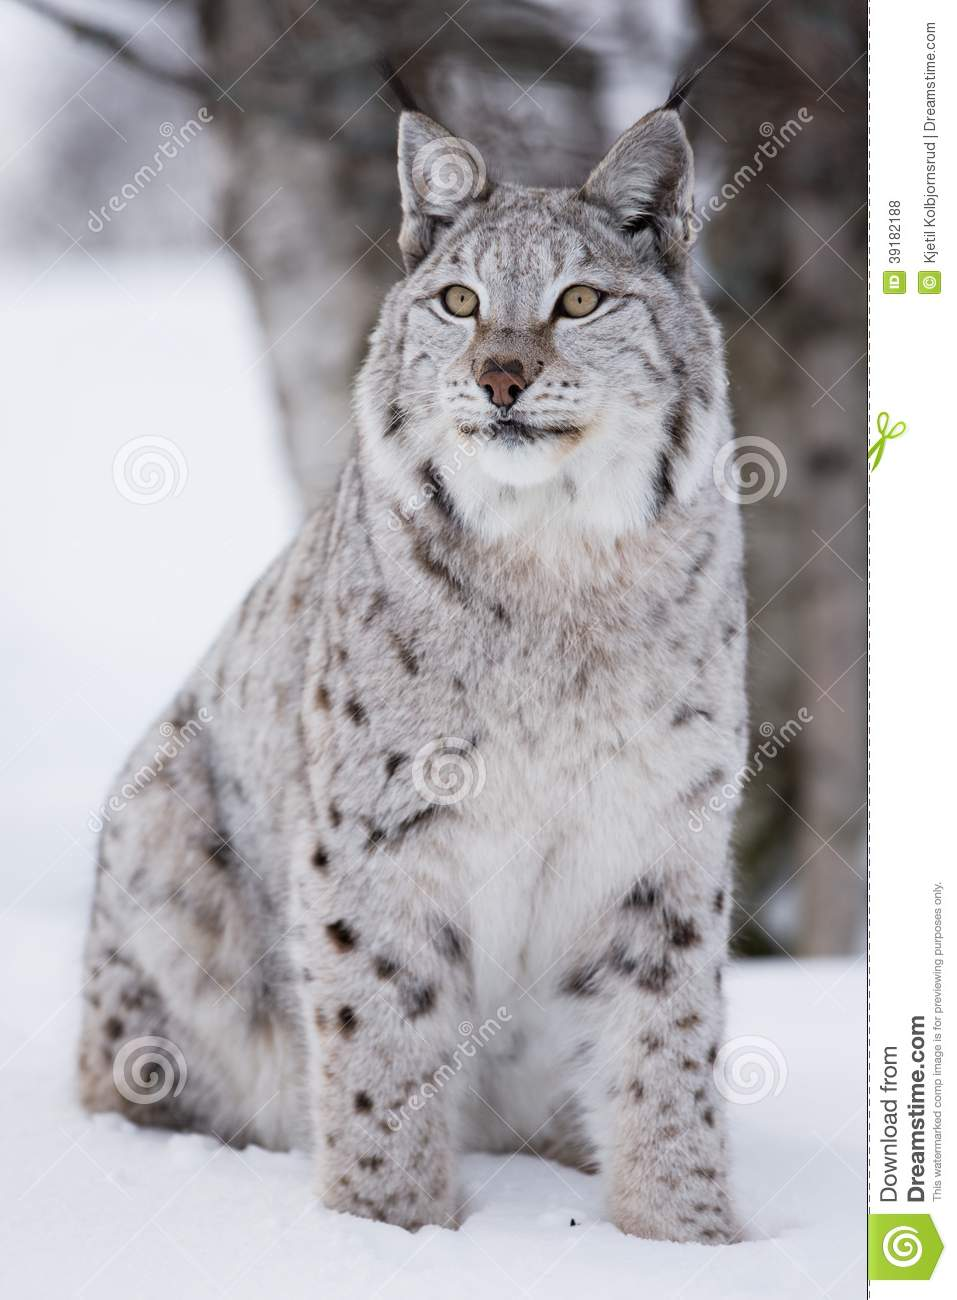 Bobcat Wallpaper Hd Proud Lynx Cat Sitting In The Snow Stock Photo Image Of